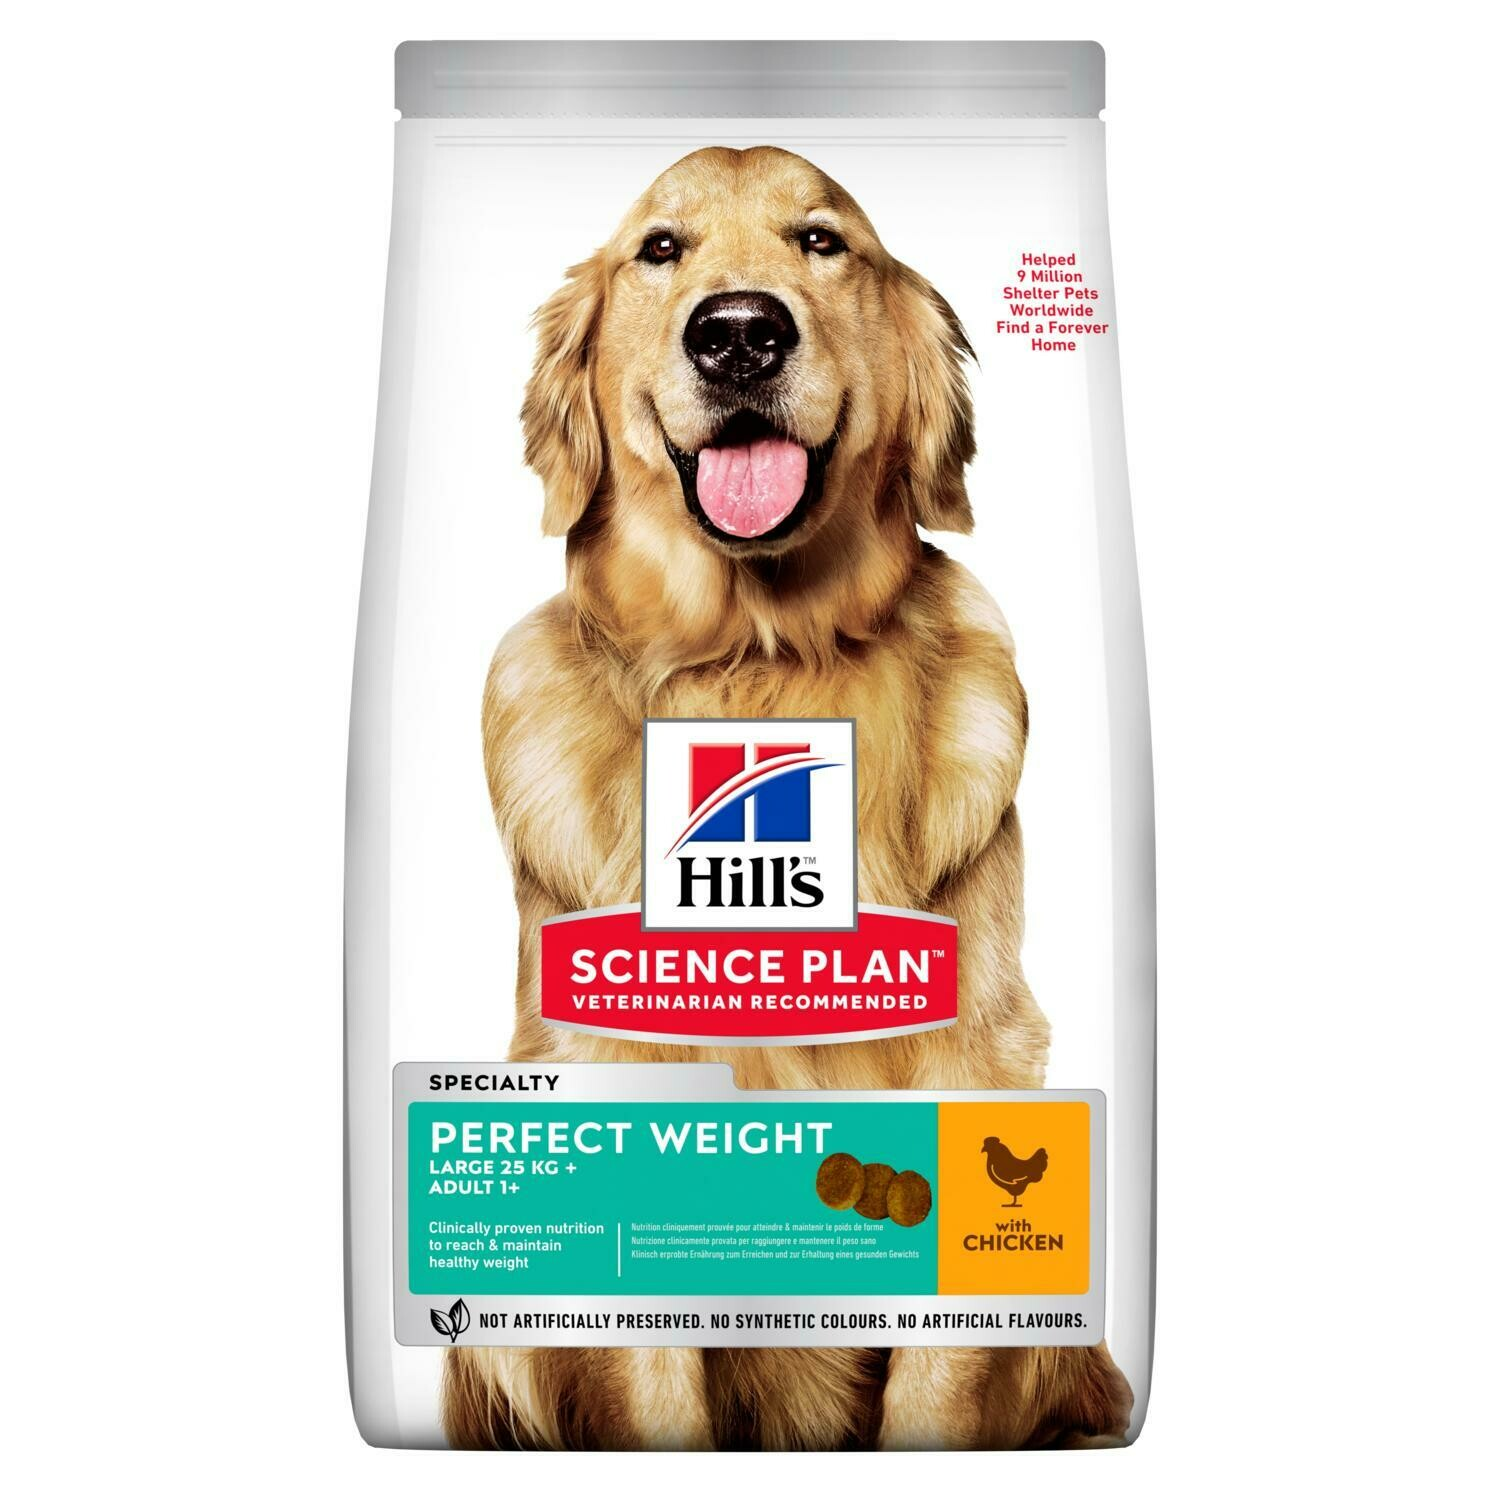 Hill's Science Plan Adult Perfect Weight Large Breed Chicken Flavour